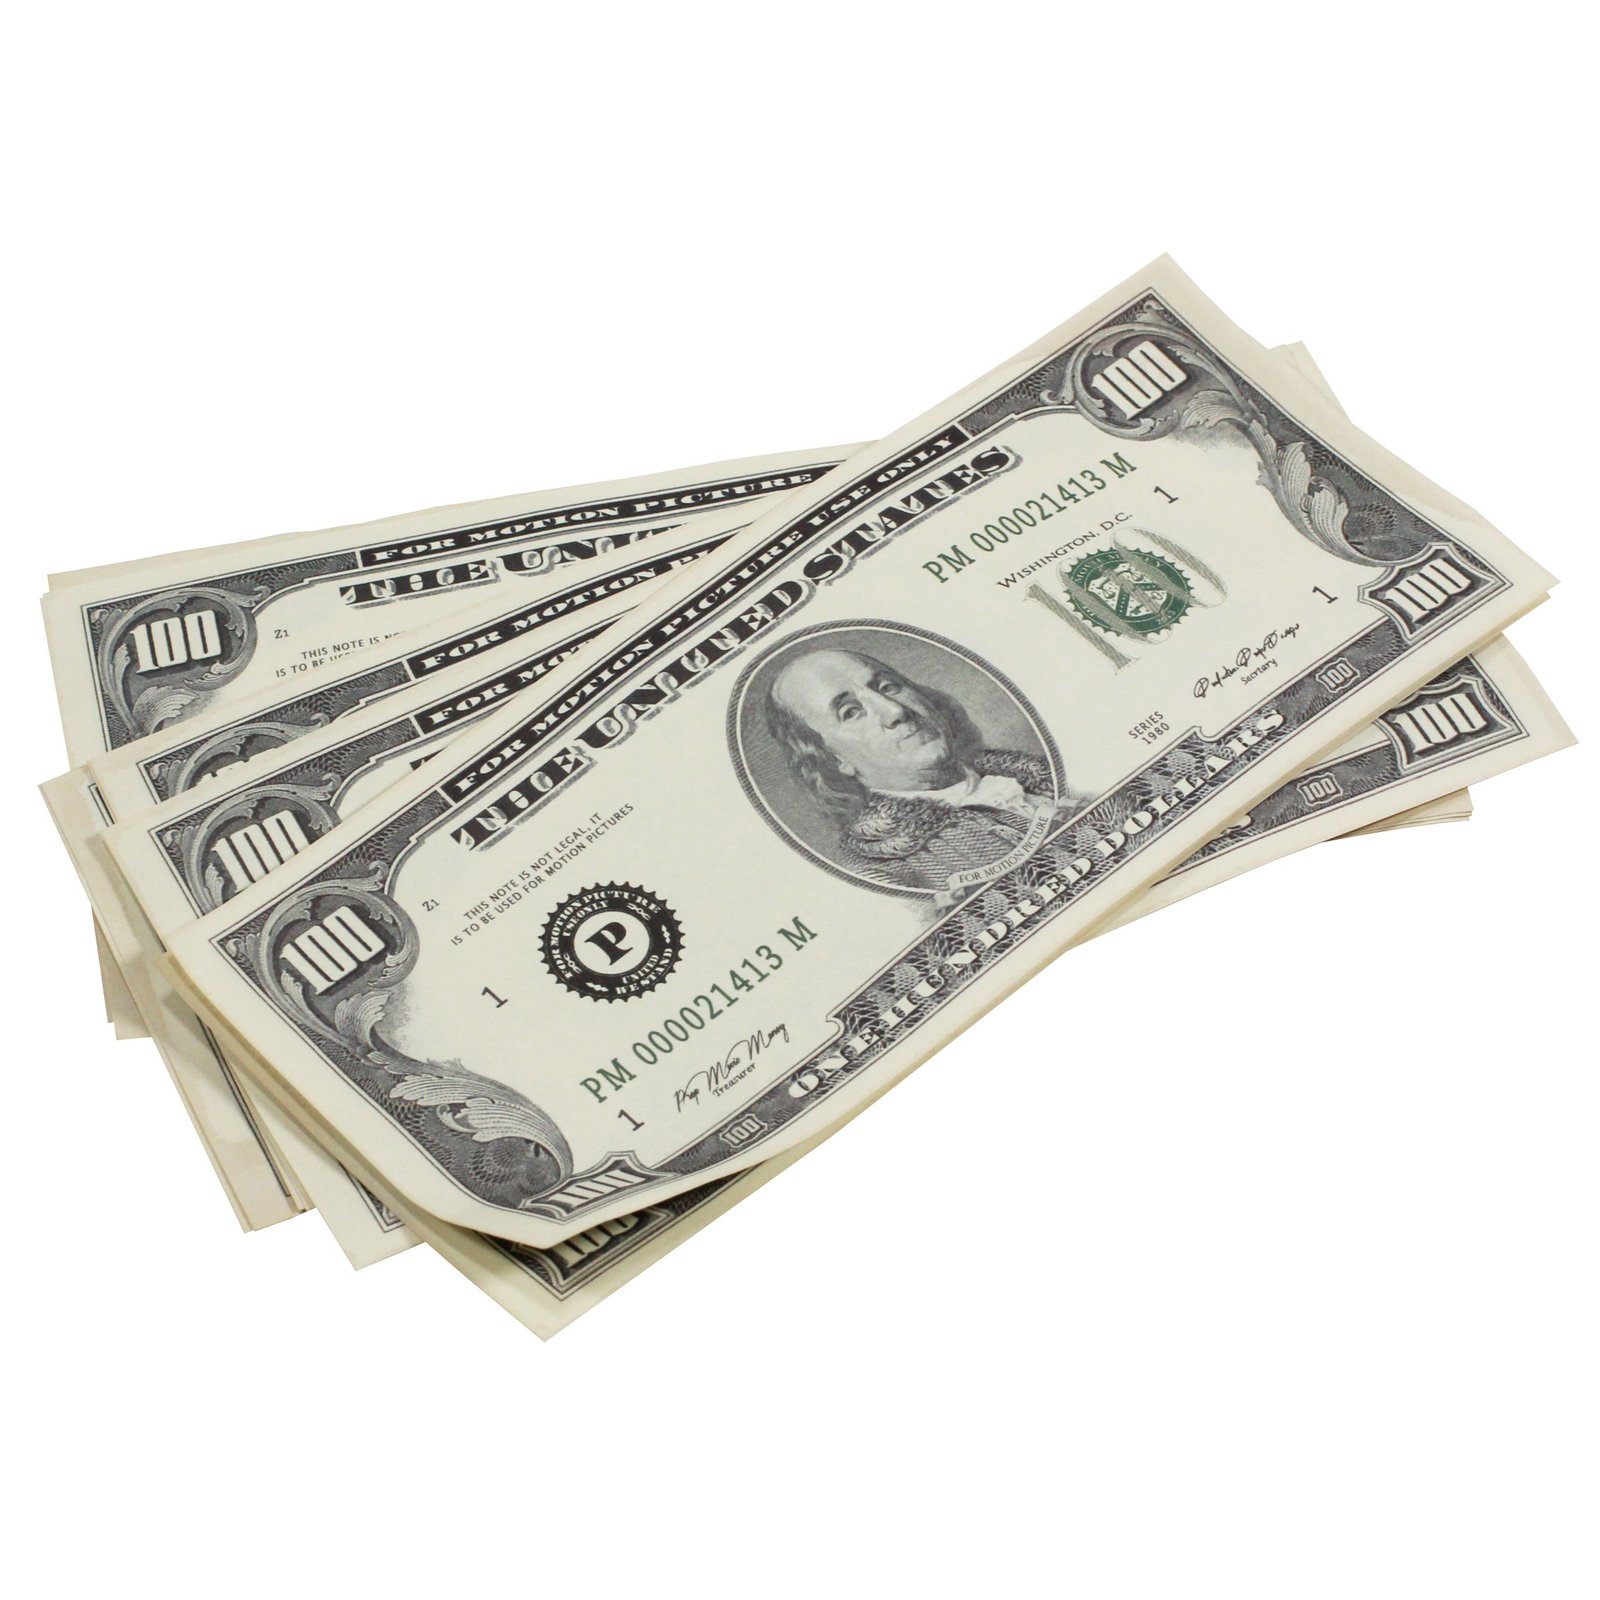 1980s Series $100s Aged $1,000,000 Full Print Package Realistic Prop Money image 6